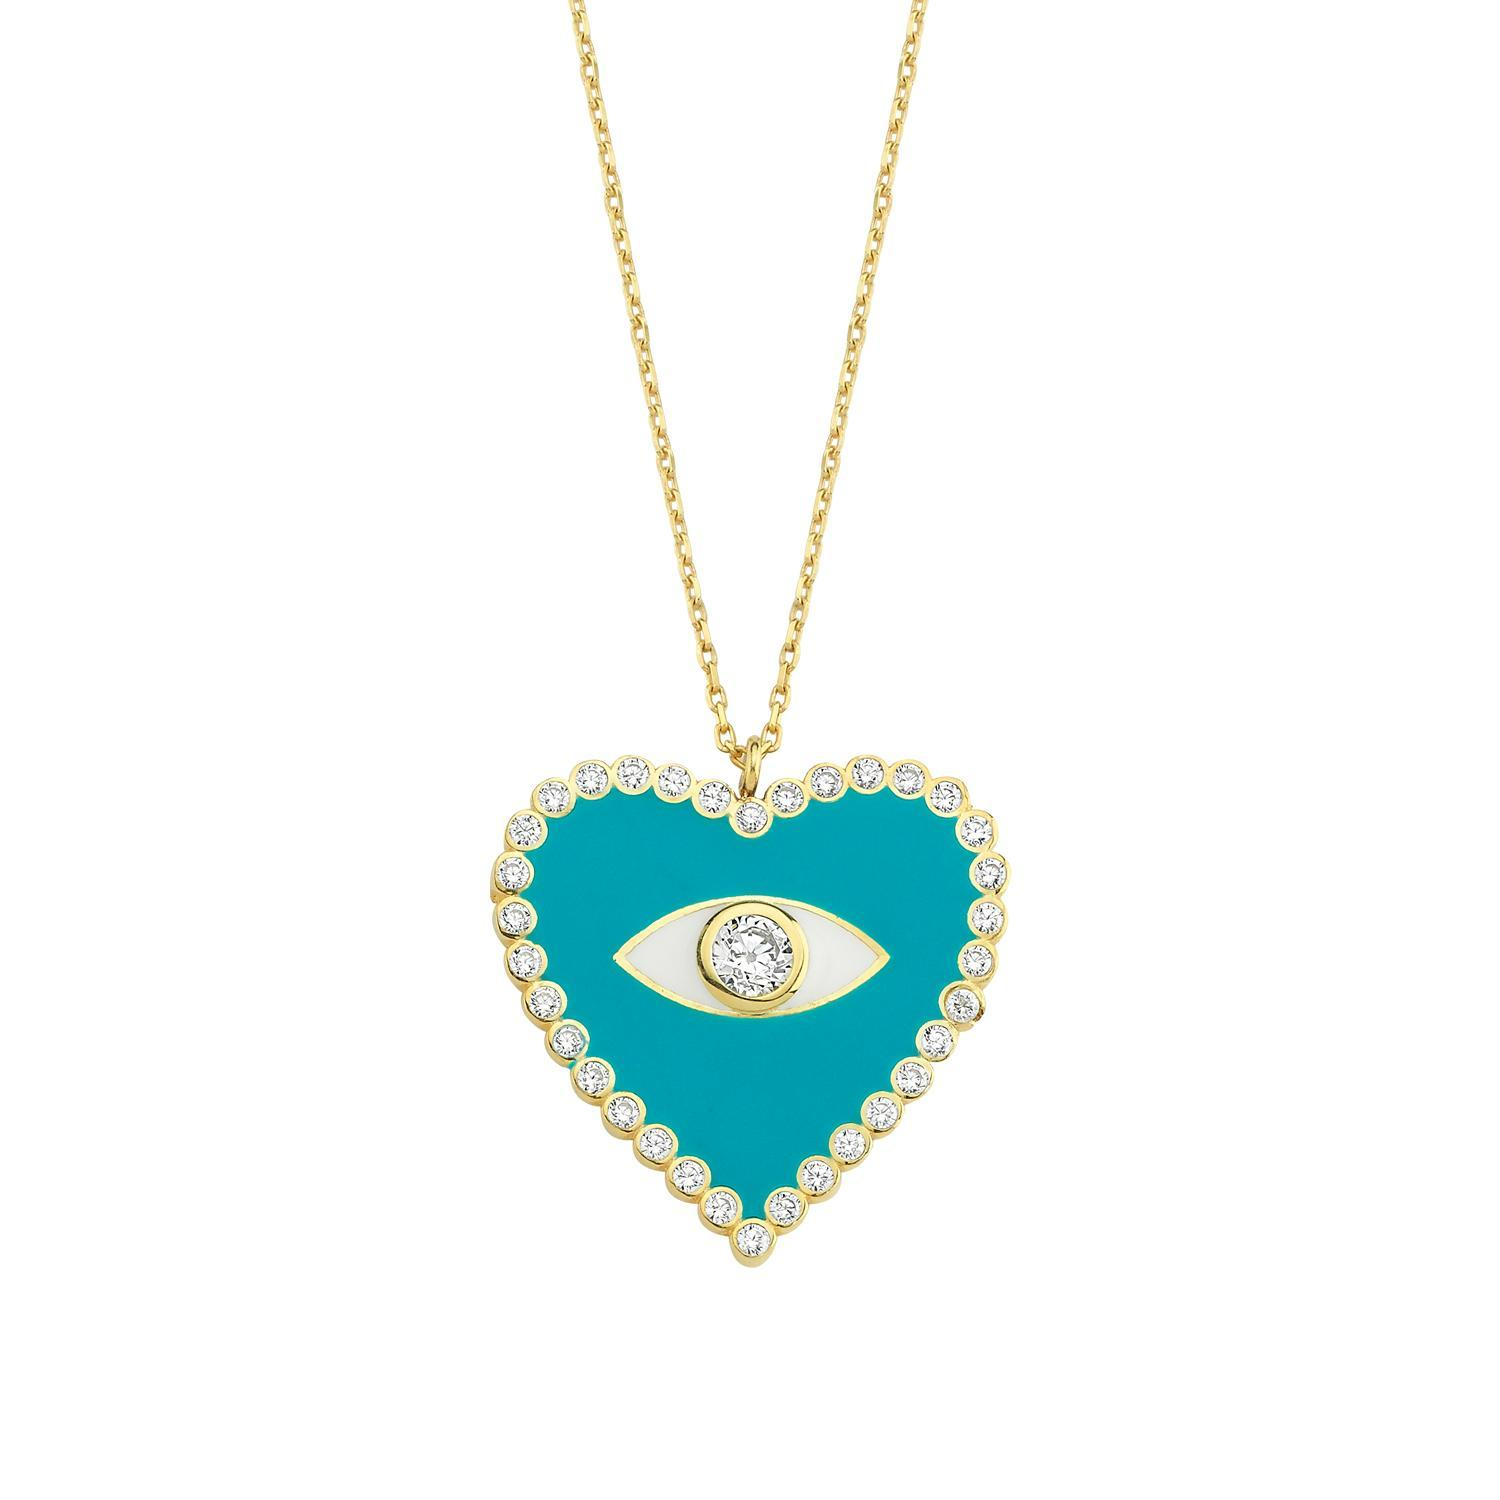 Teal Heart and Crystal Evil Eye Pendant Necklace